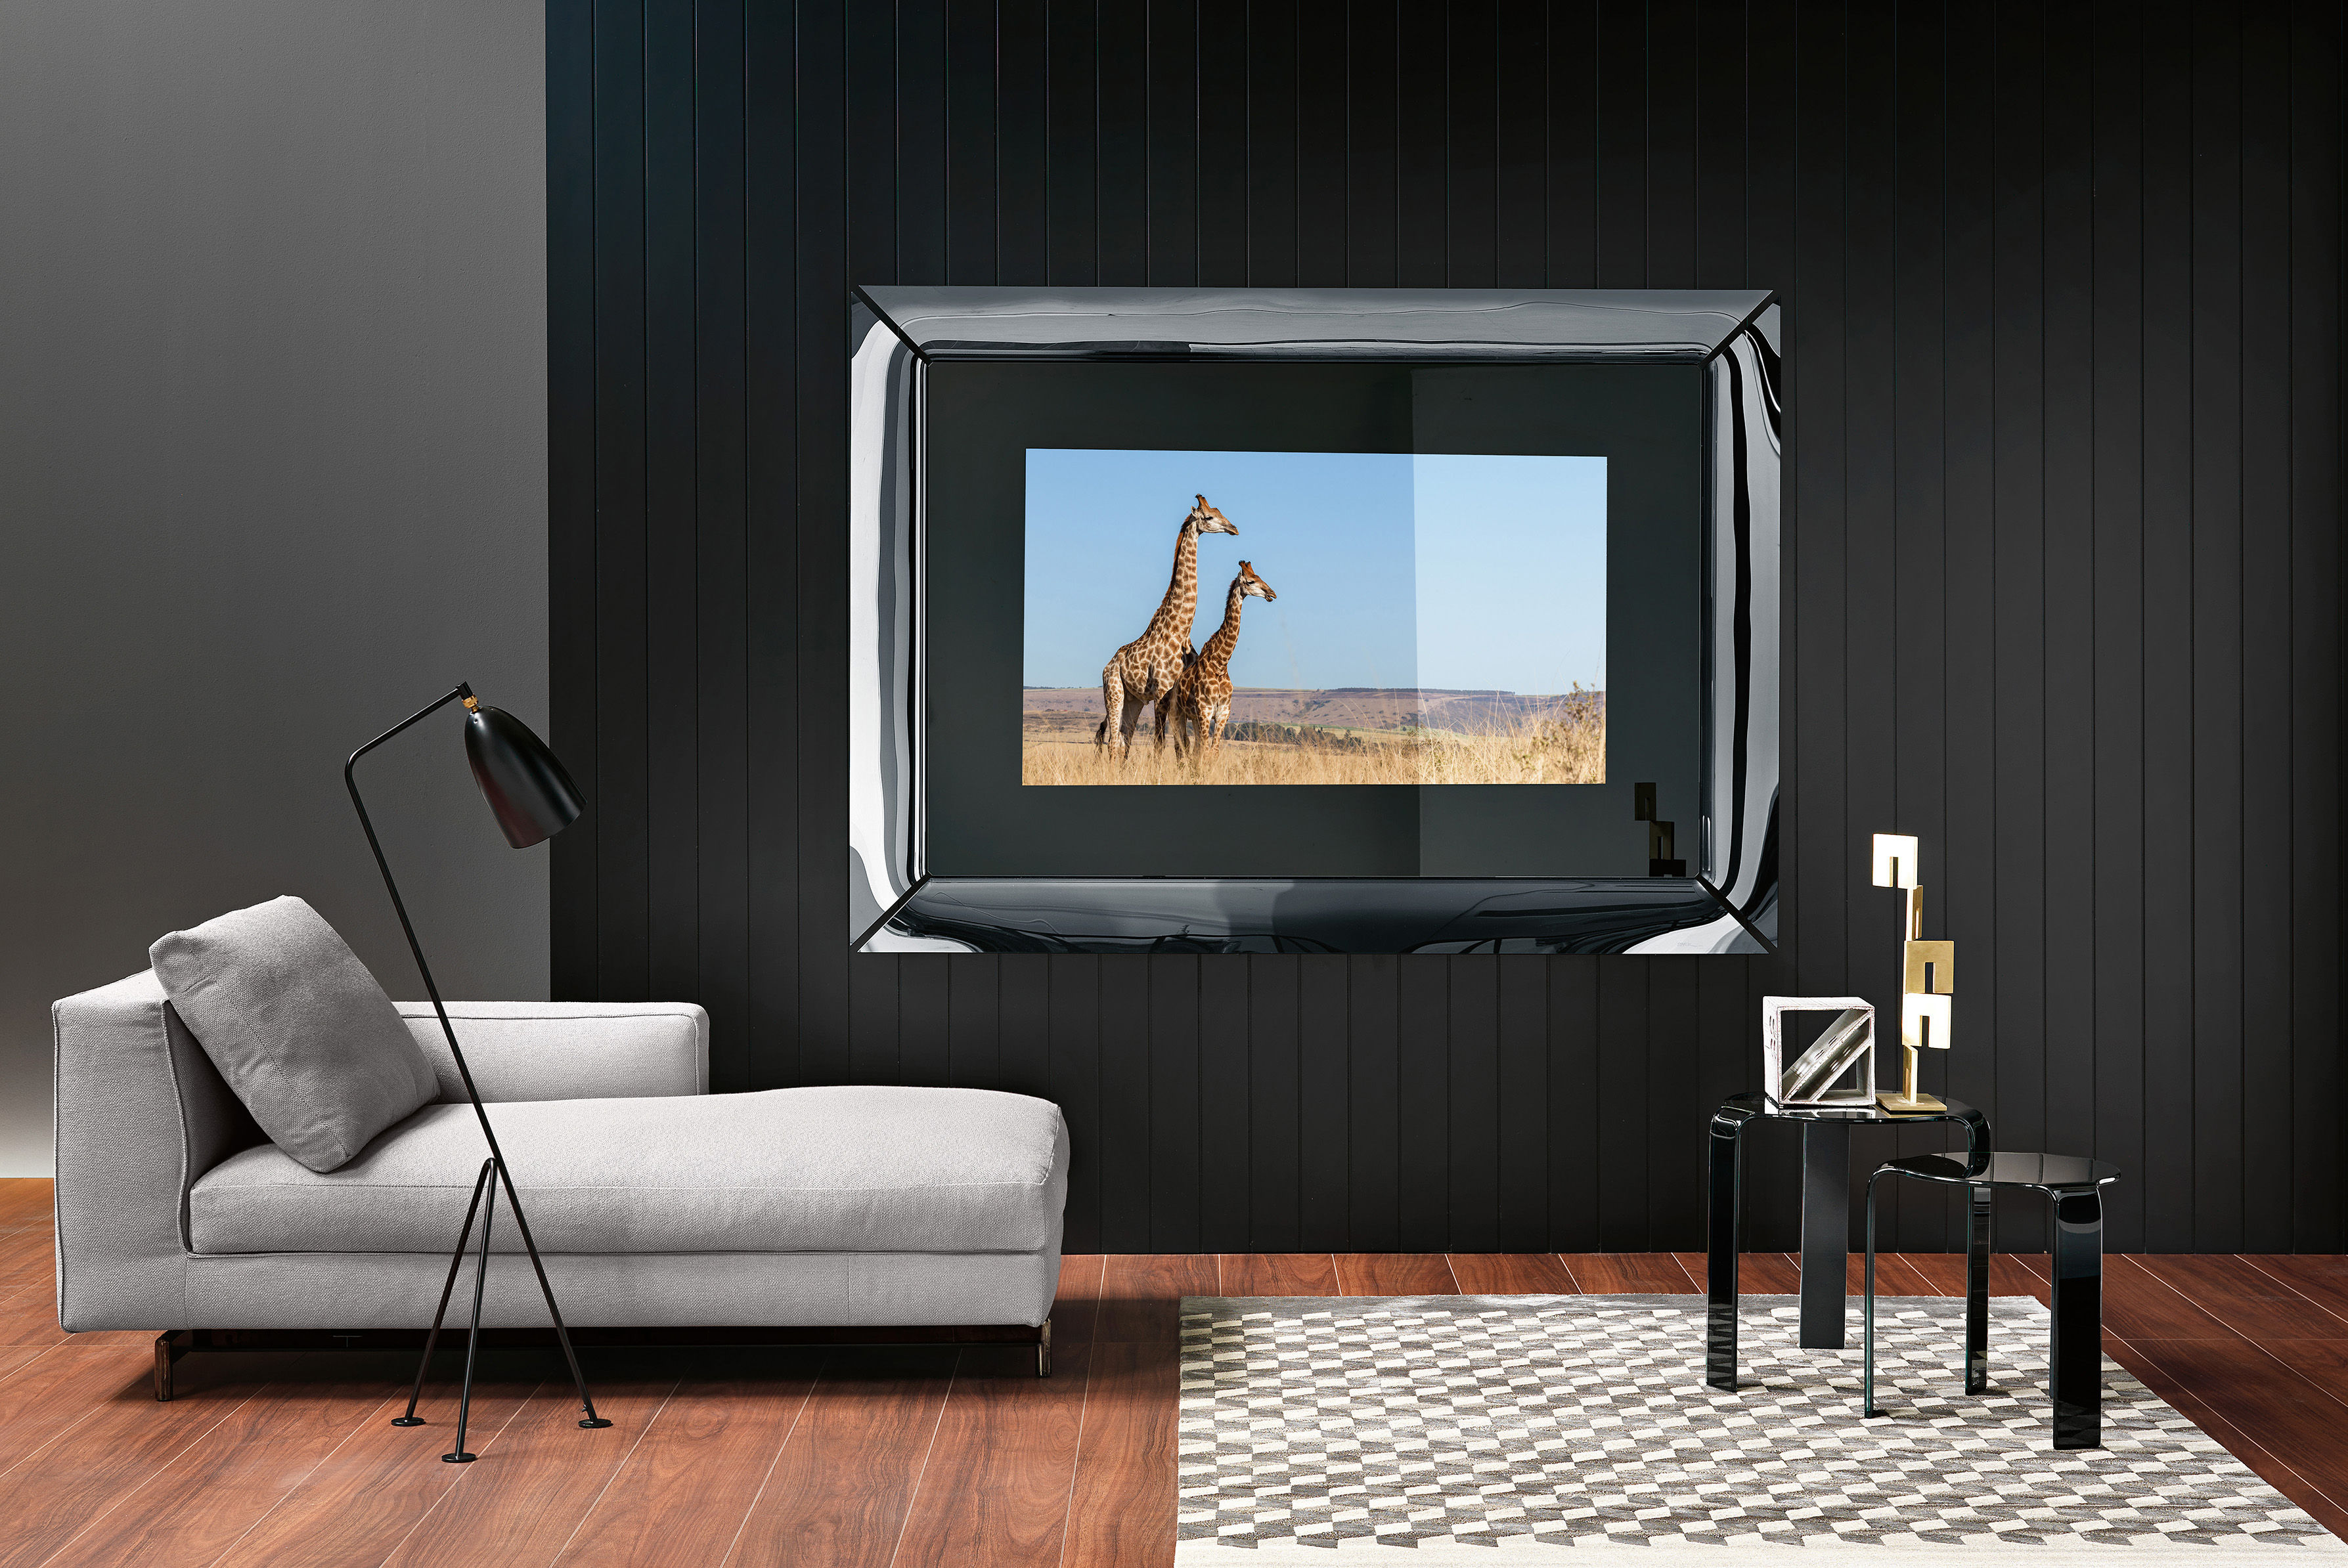 Caadre tv wall mirror frame titanium black by fiam for Miroir caadre philippe starck